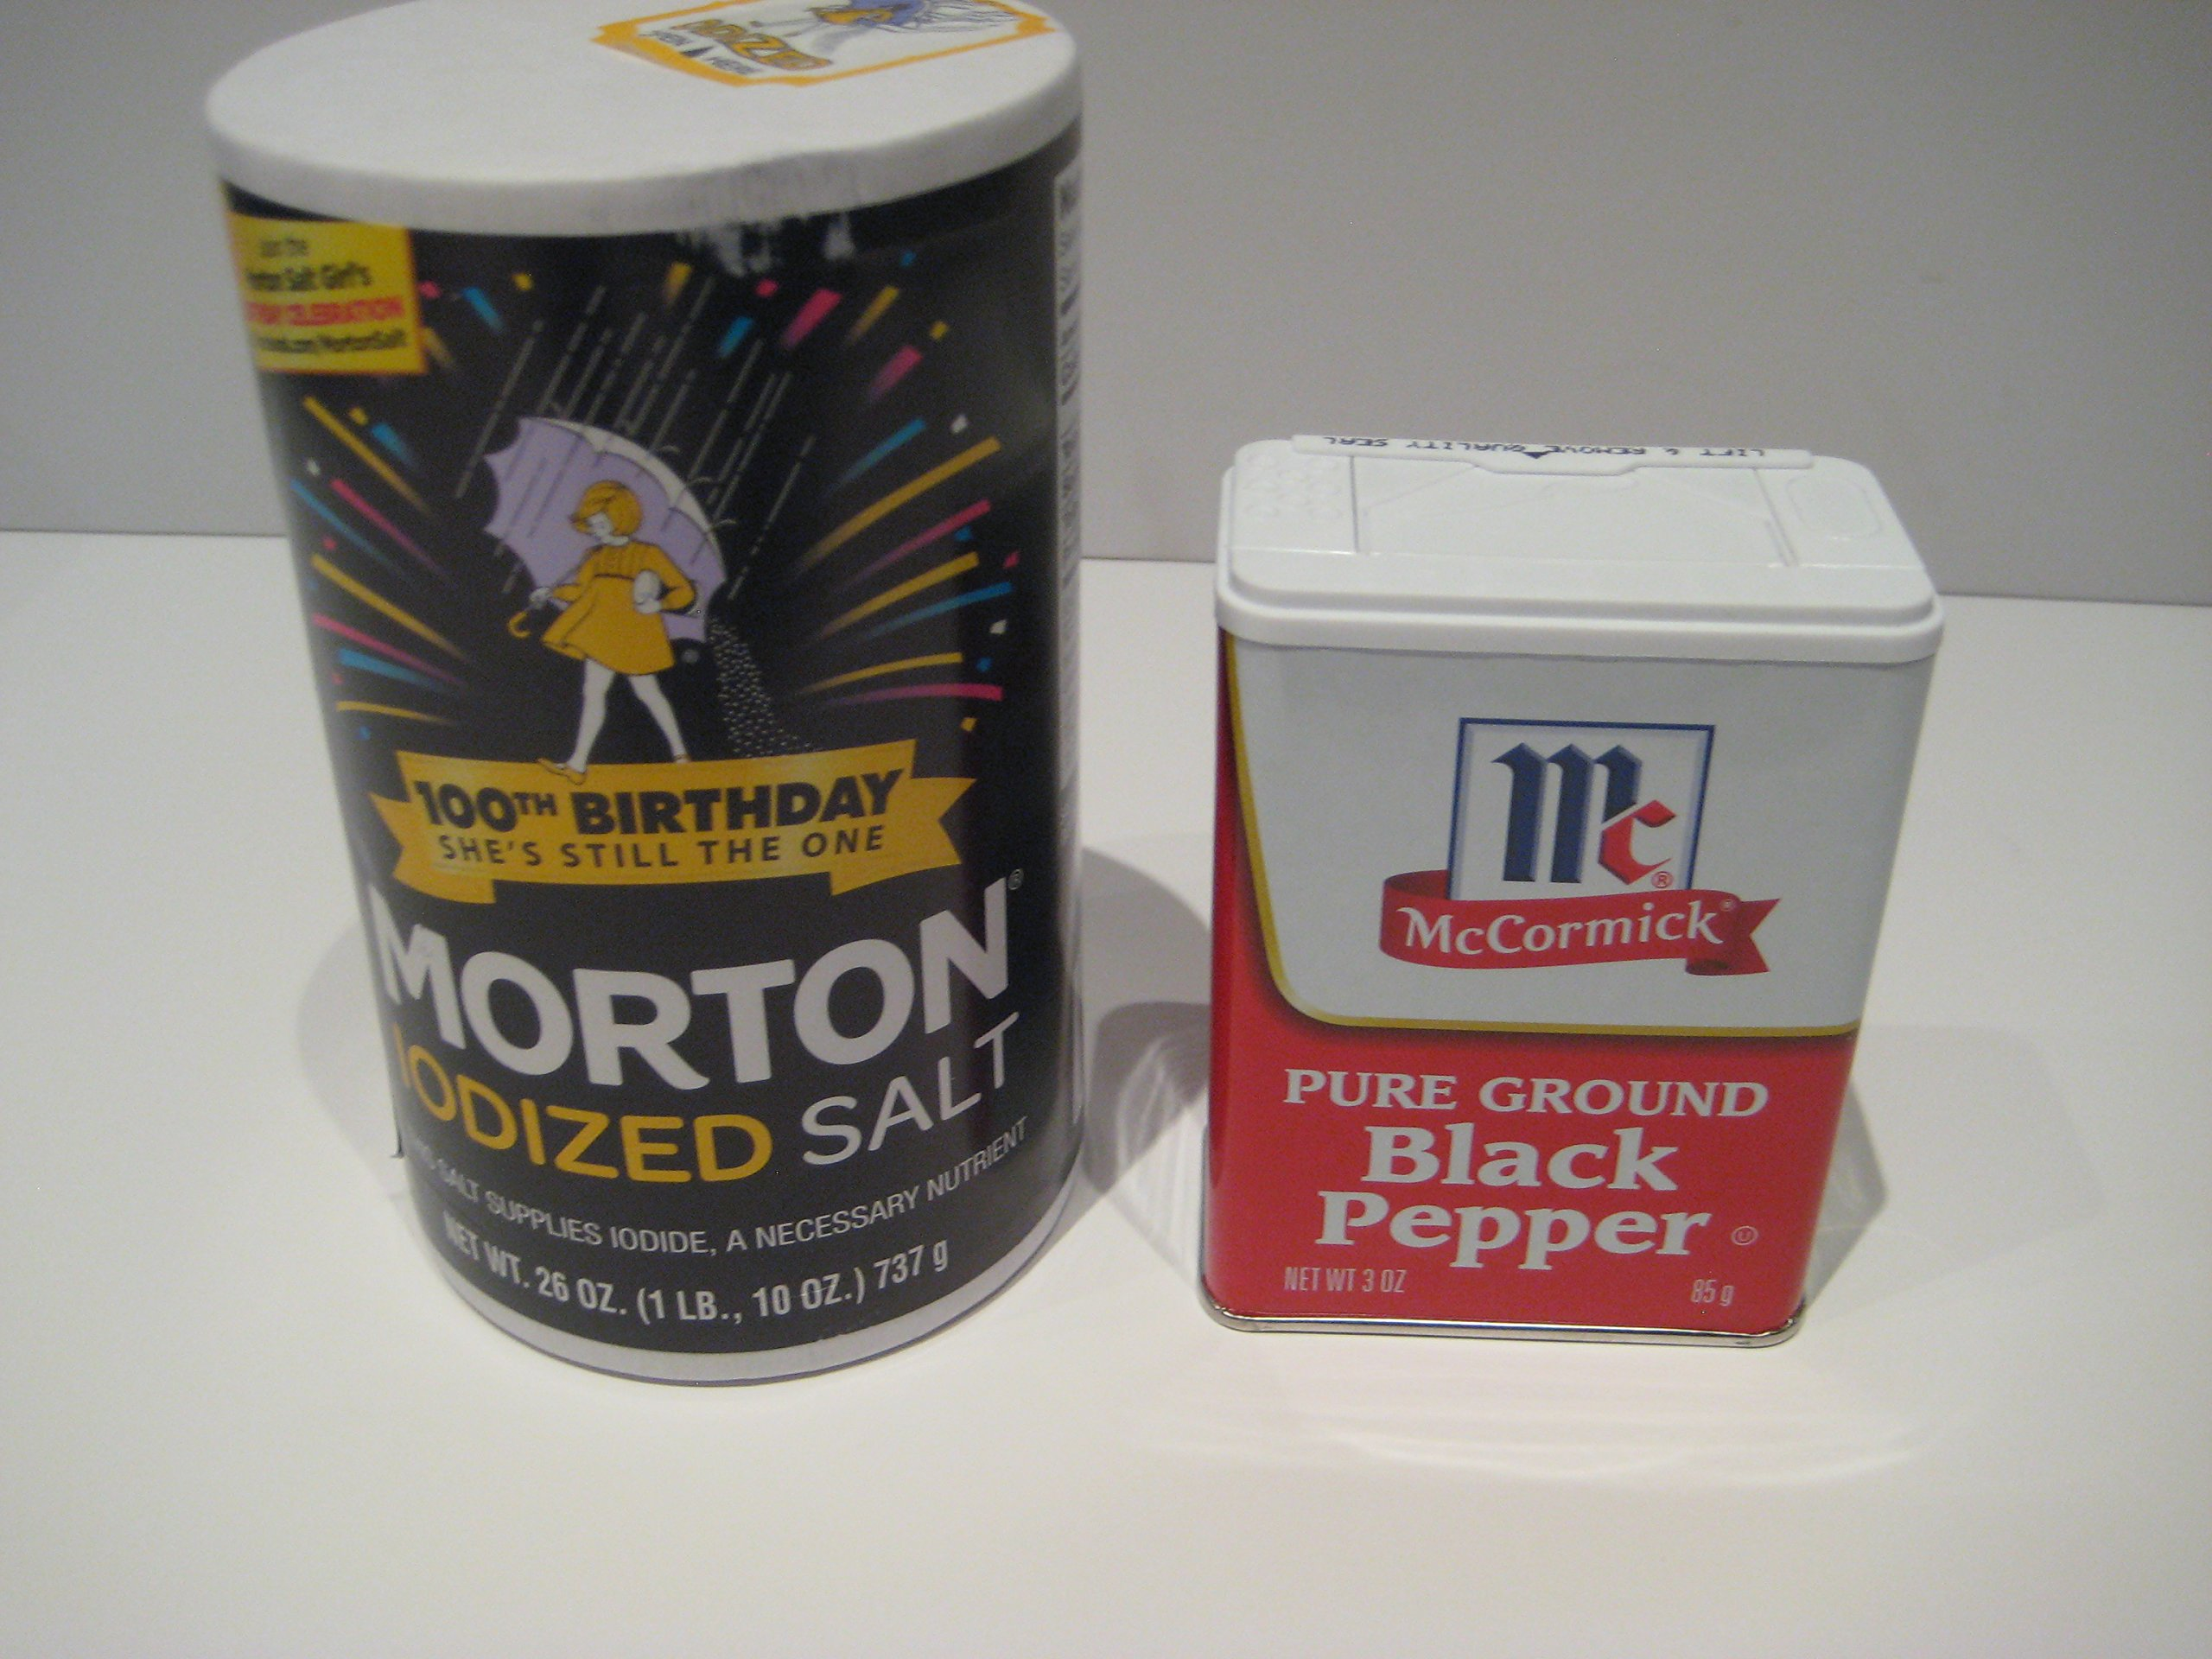 Morton Iodized Salt 26oz & Mccormick Pure Ground Black Pepper 3oz. Bundle